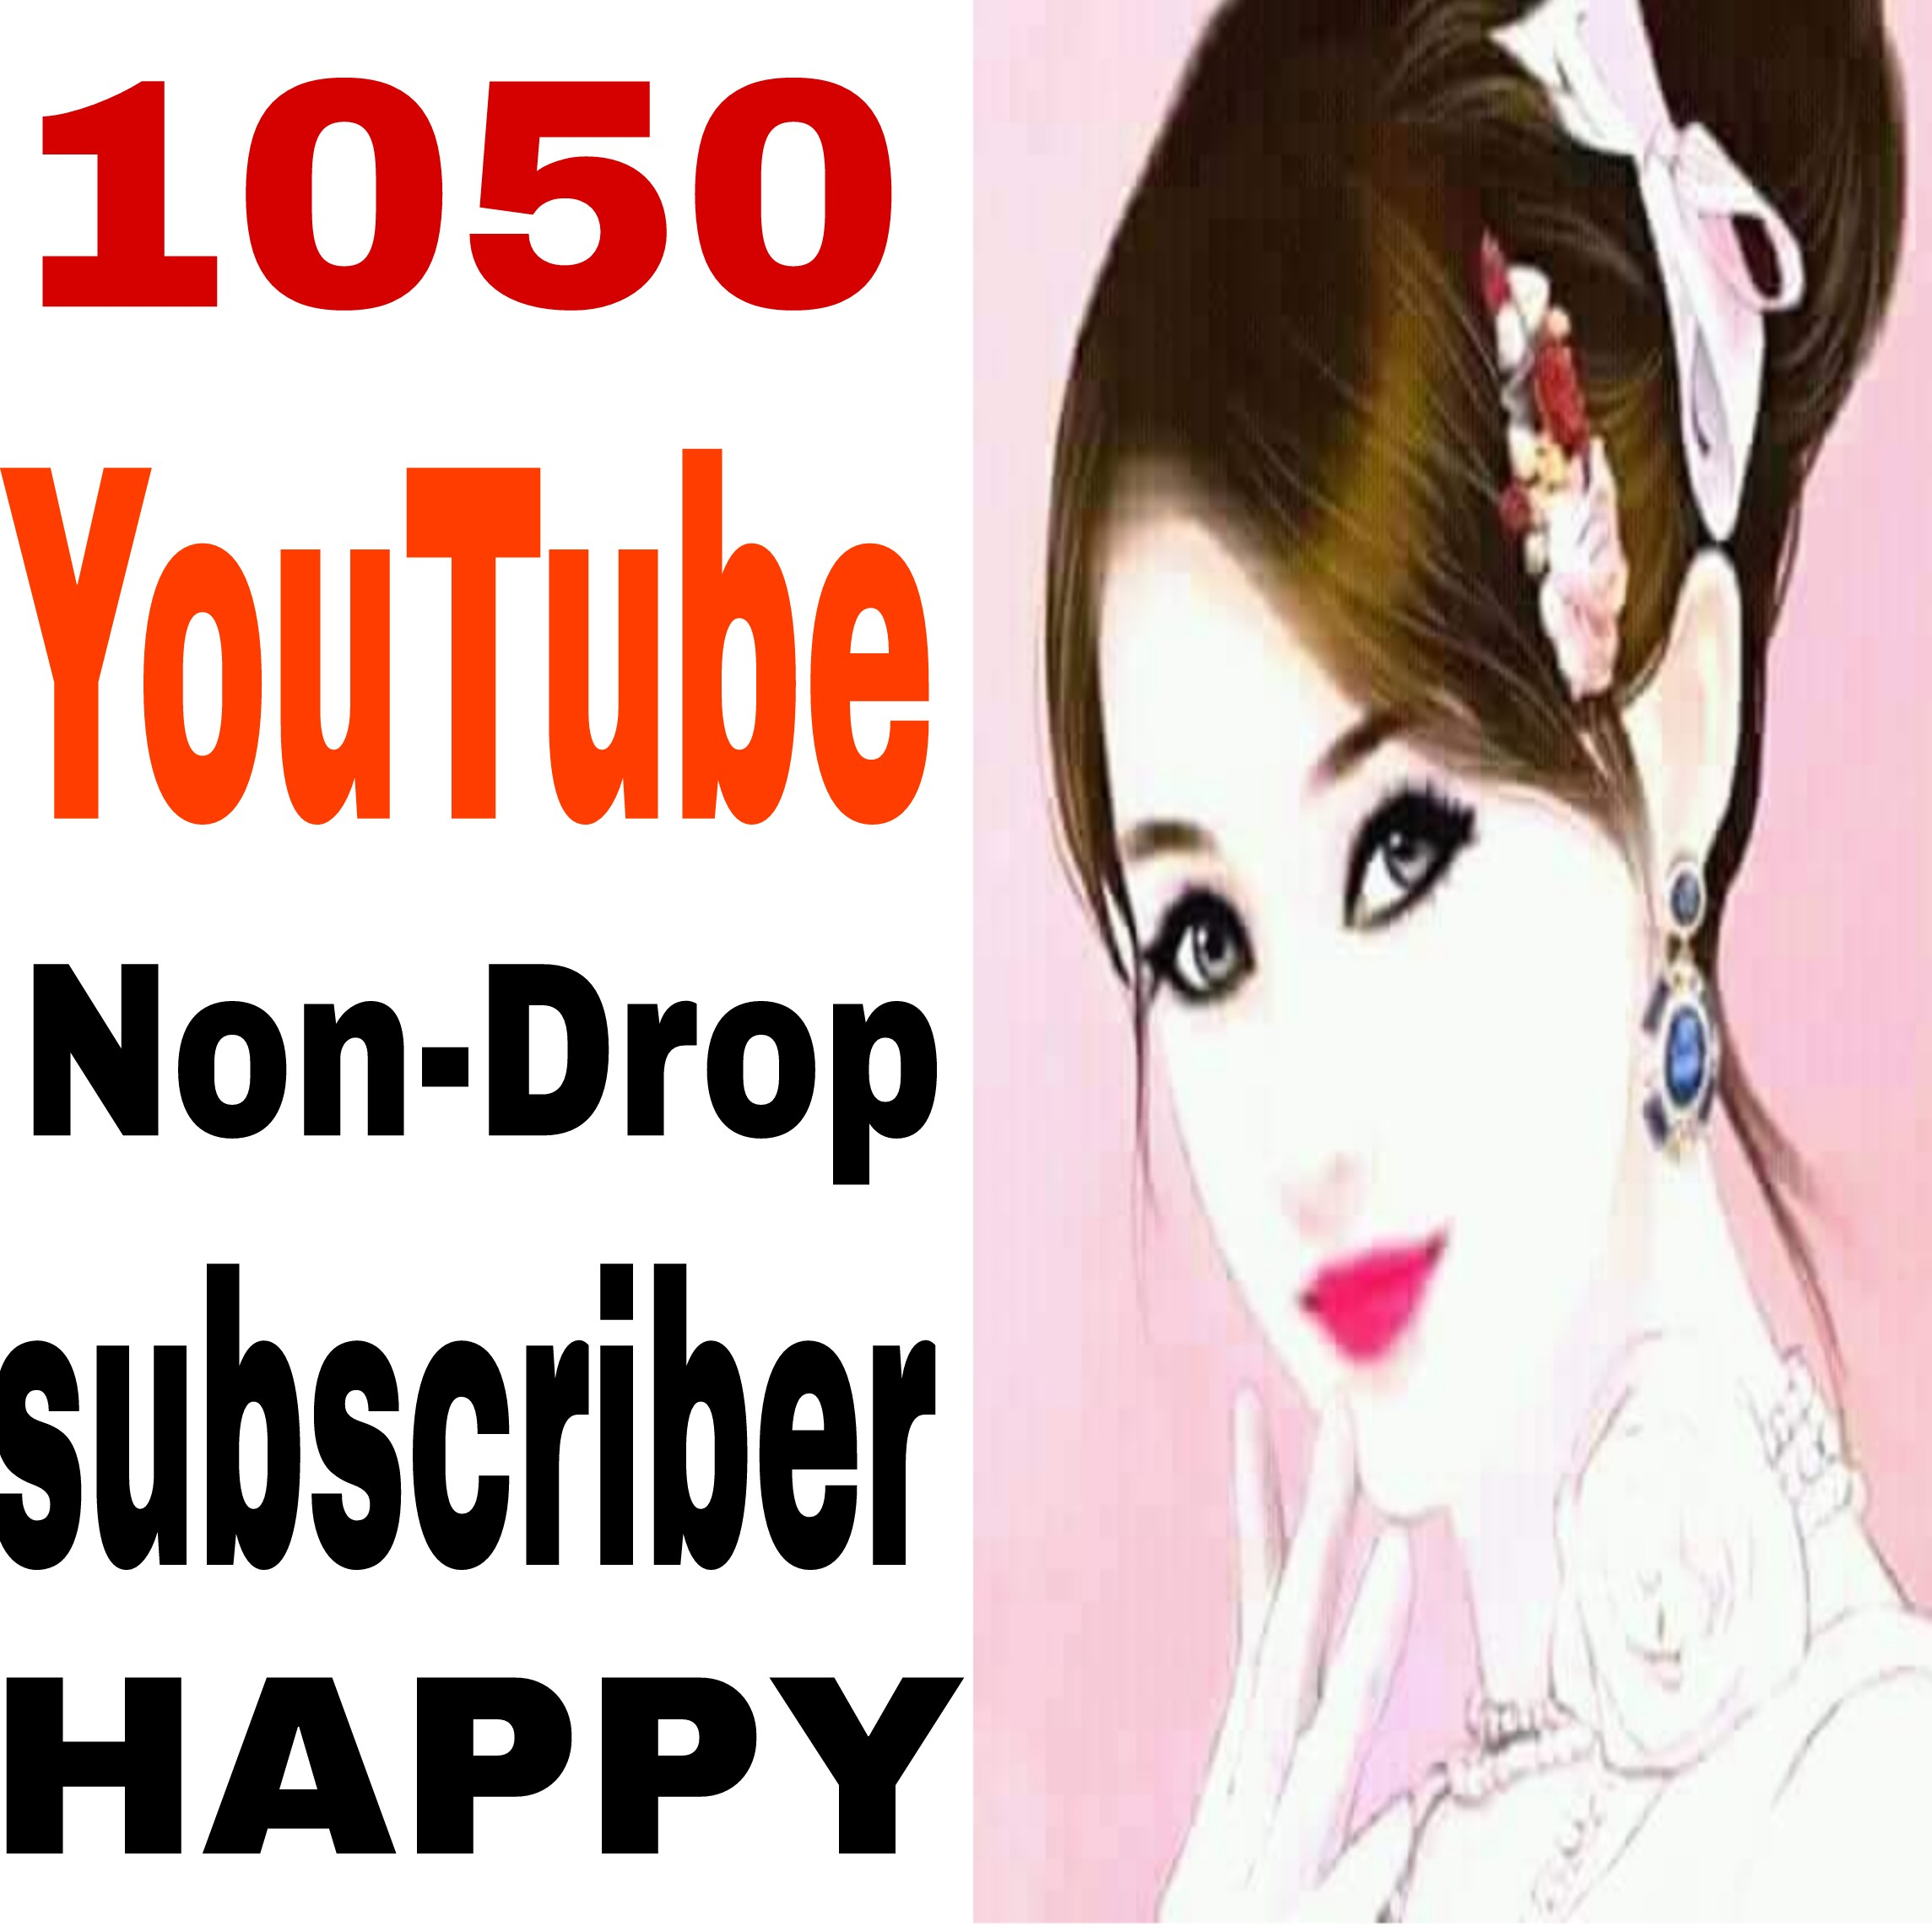 Real NON-DROP 1k/1050  channel Sub-Ccriber  very fast delivery 10 hours complete